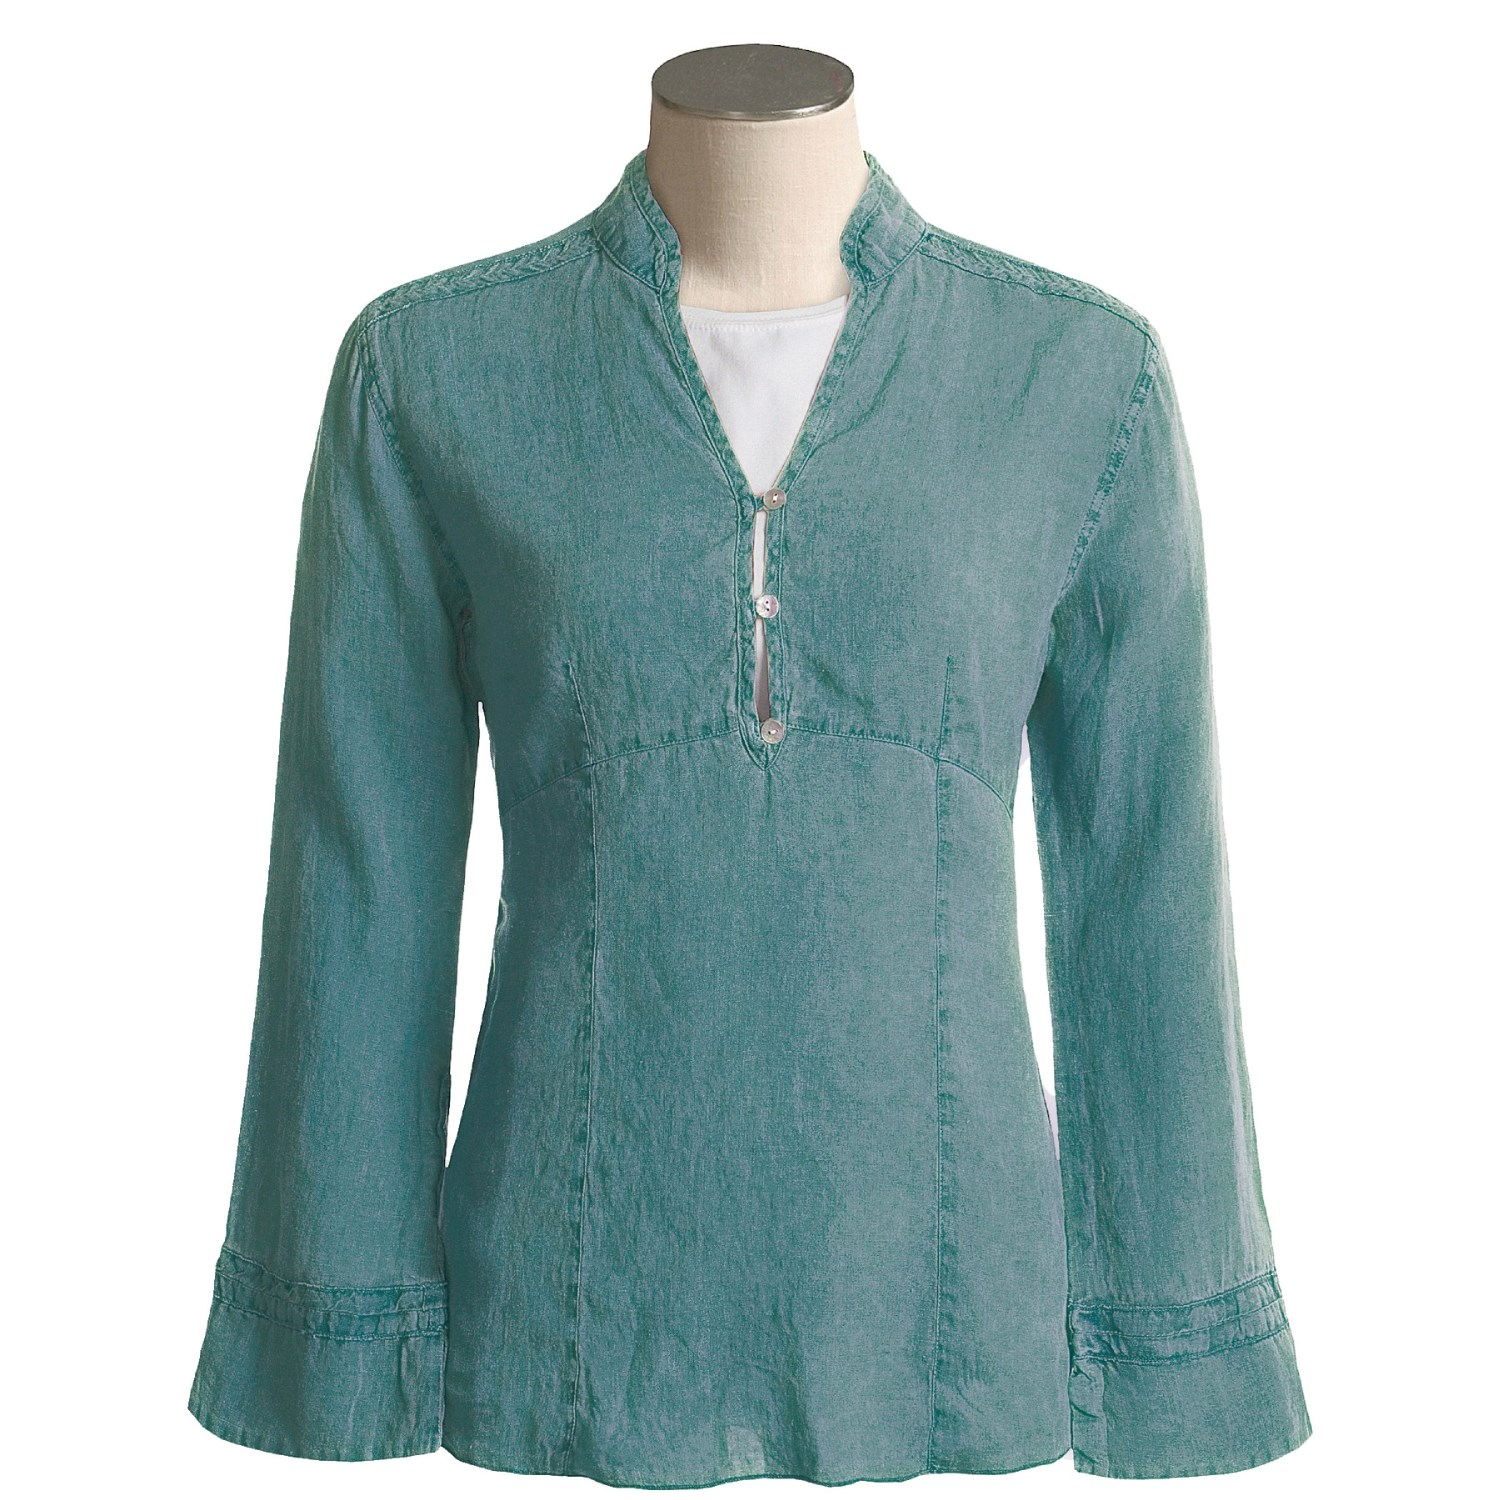 Shop our large selection of Renfaire shirts and tunics for fine period pieces that will make your Ren Faire costuming come alive.